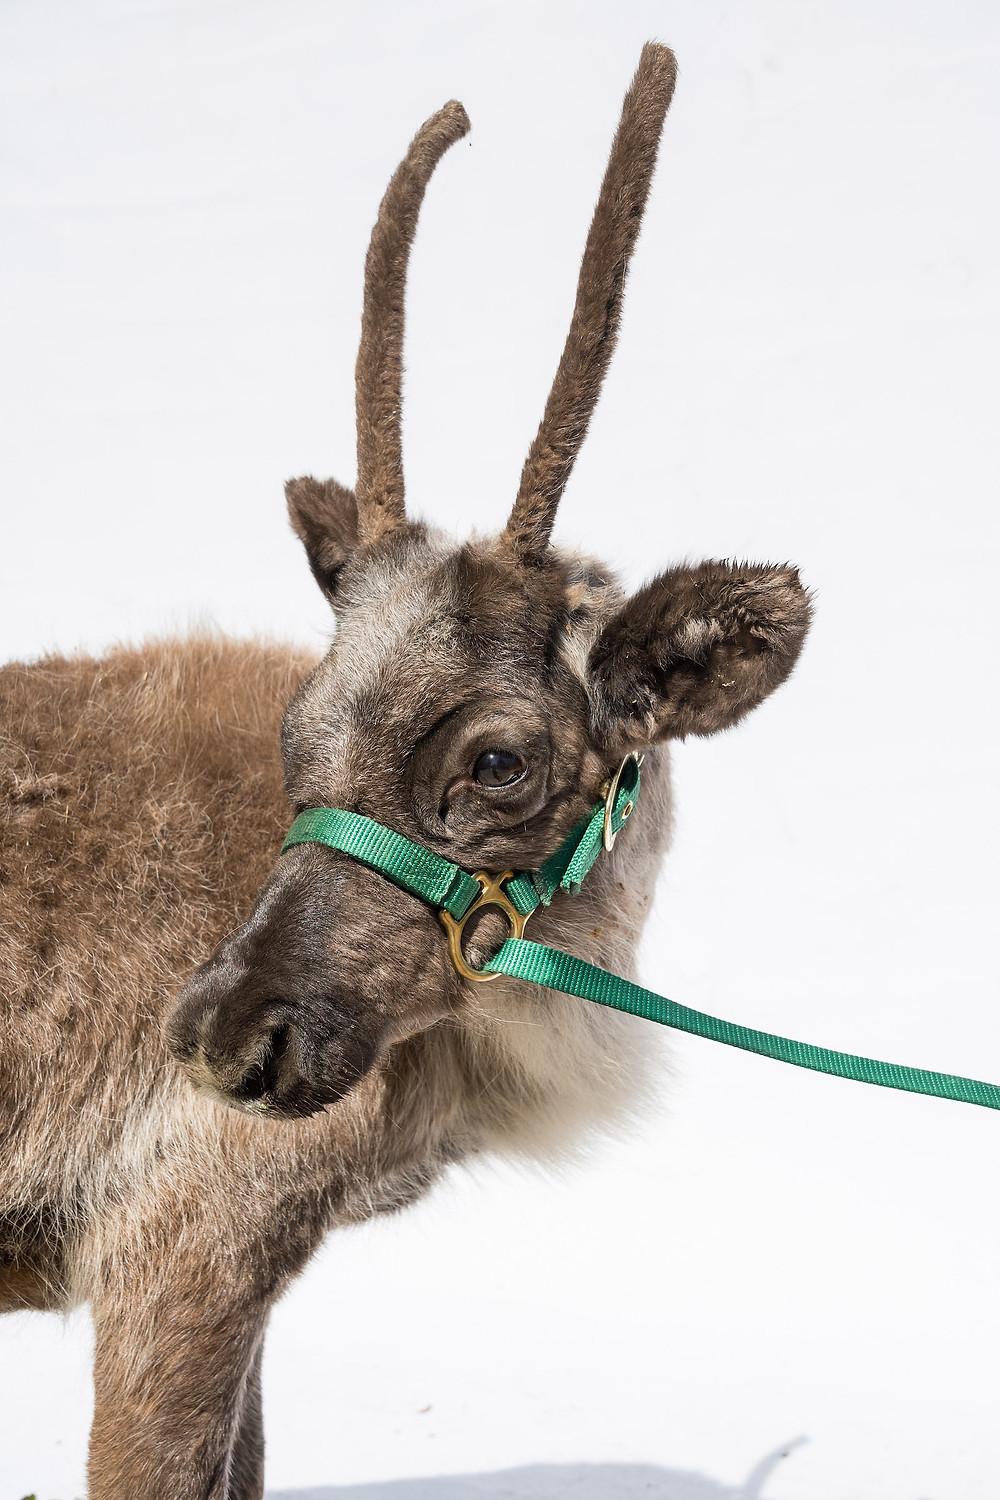 Los Angeles Zoo's REINDEER ROMP, the only opportunity to see real reindeer in Los Angeles, is featured daily from Friday, November 18, 2016, through Sunday, January 8, 2017 (except Christmas Day) PHOTO CREDIT:  Jamie Pham